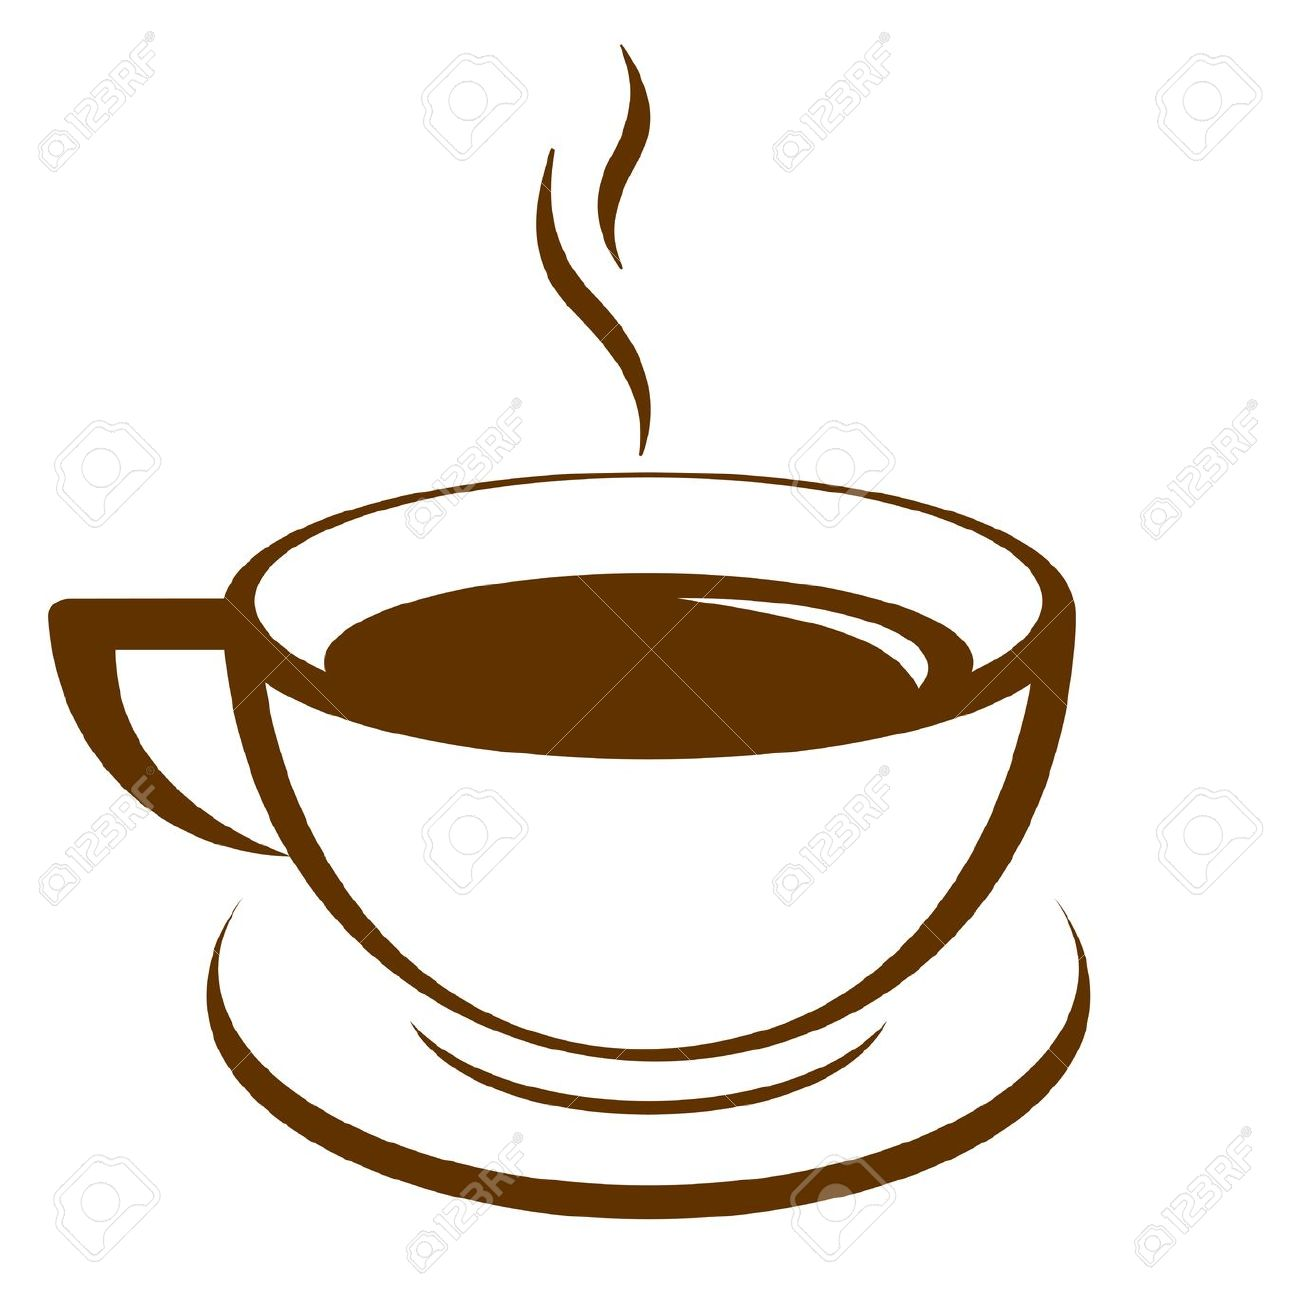 Coffee cup logo clipart clipart coffee cup: Vector icon of | Clipart Panda - Free Clipart Images clipart